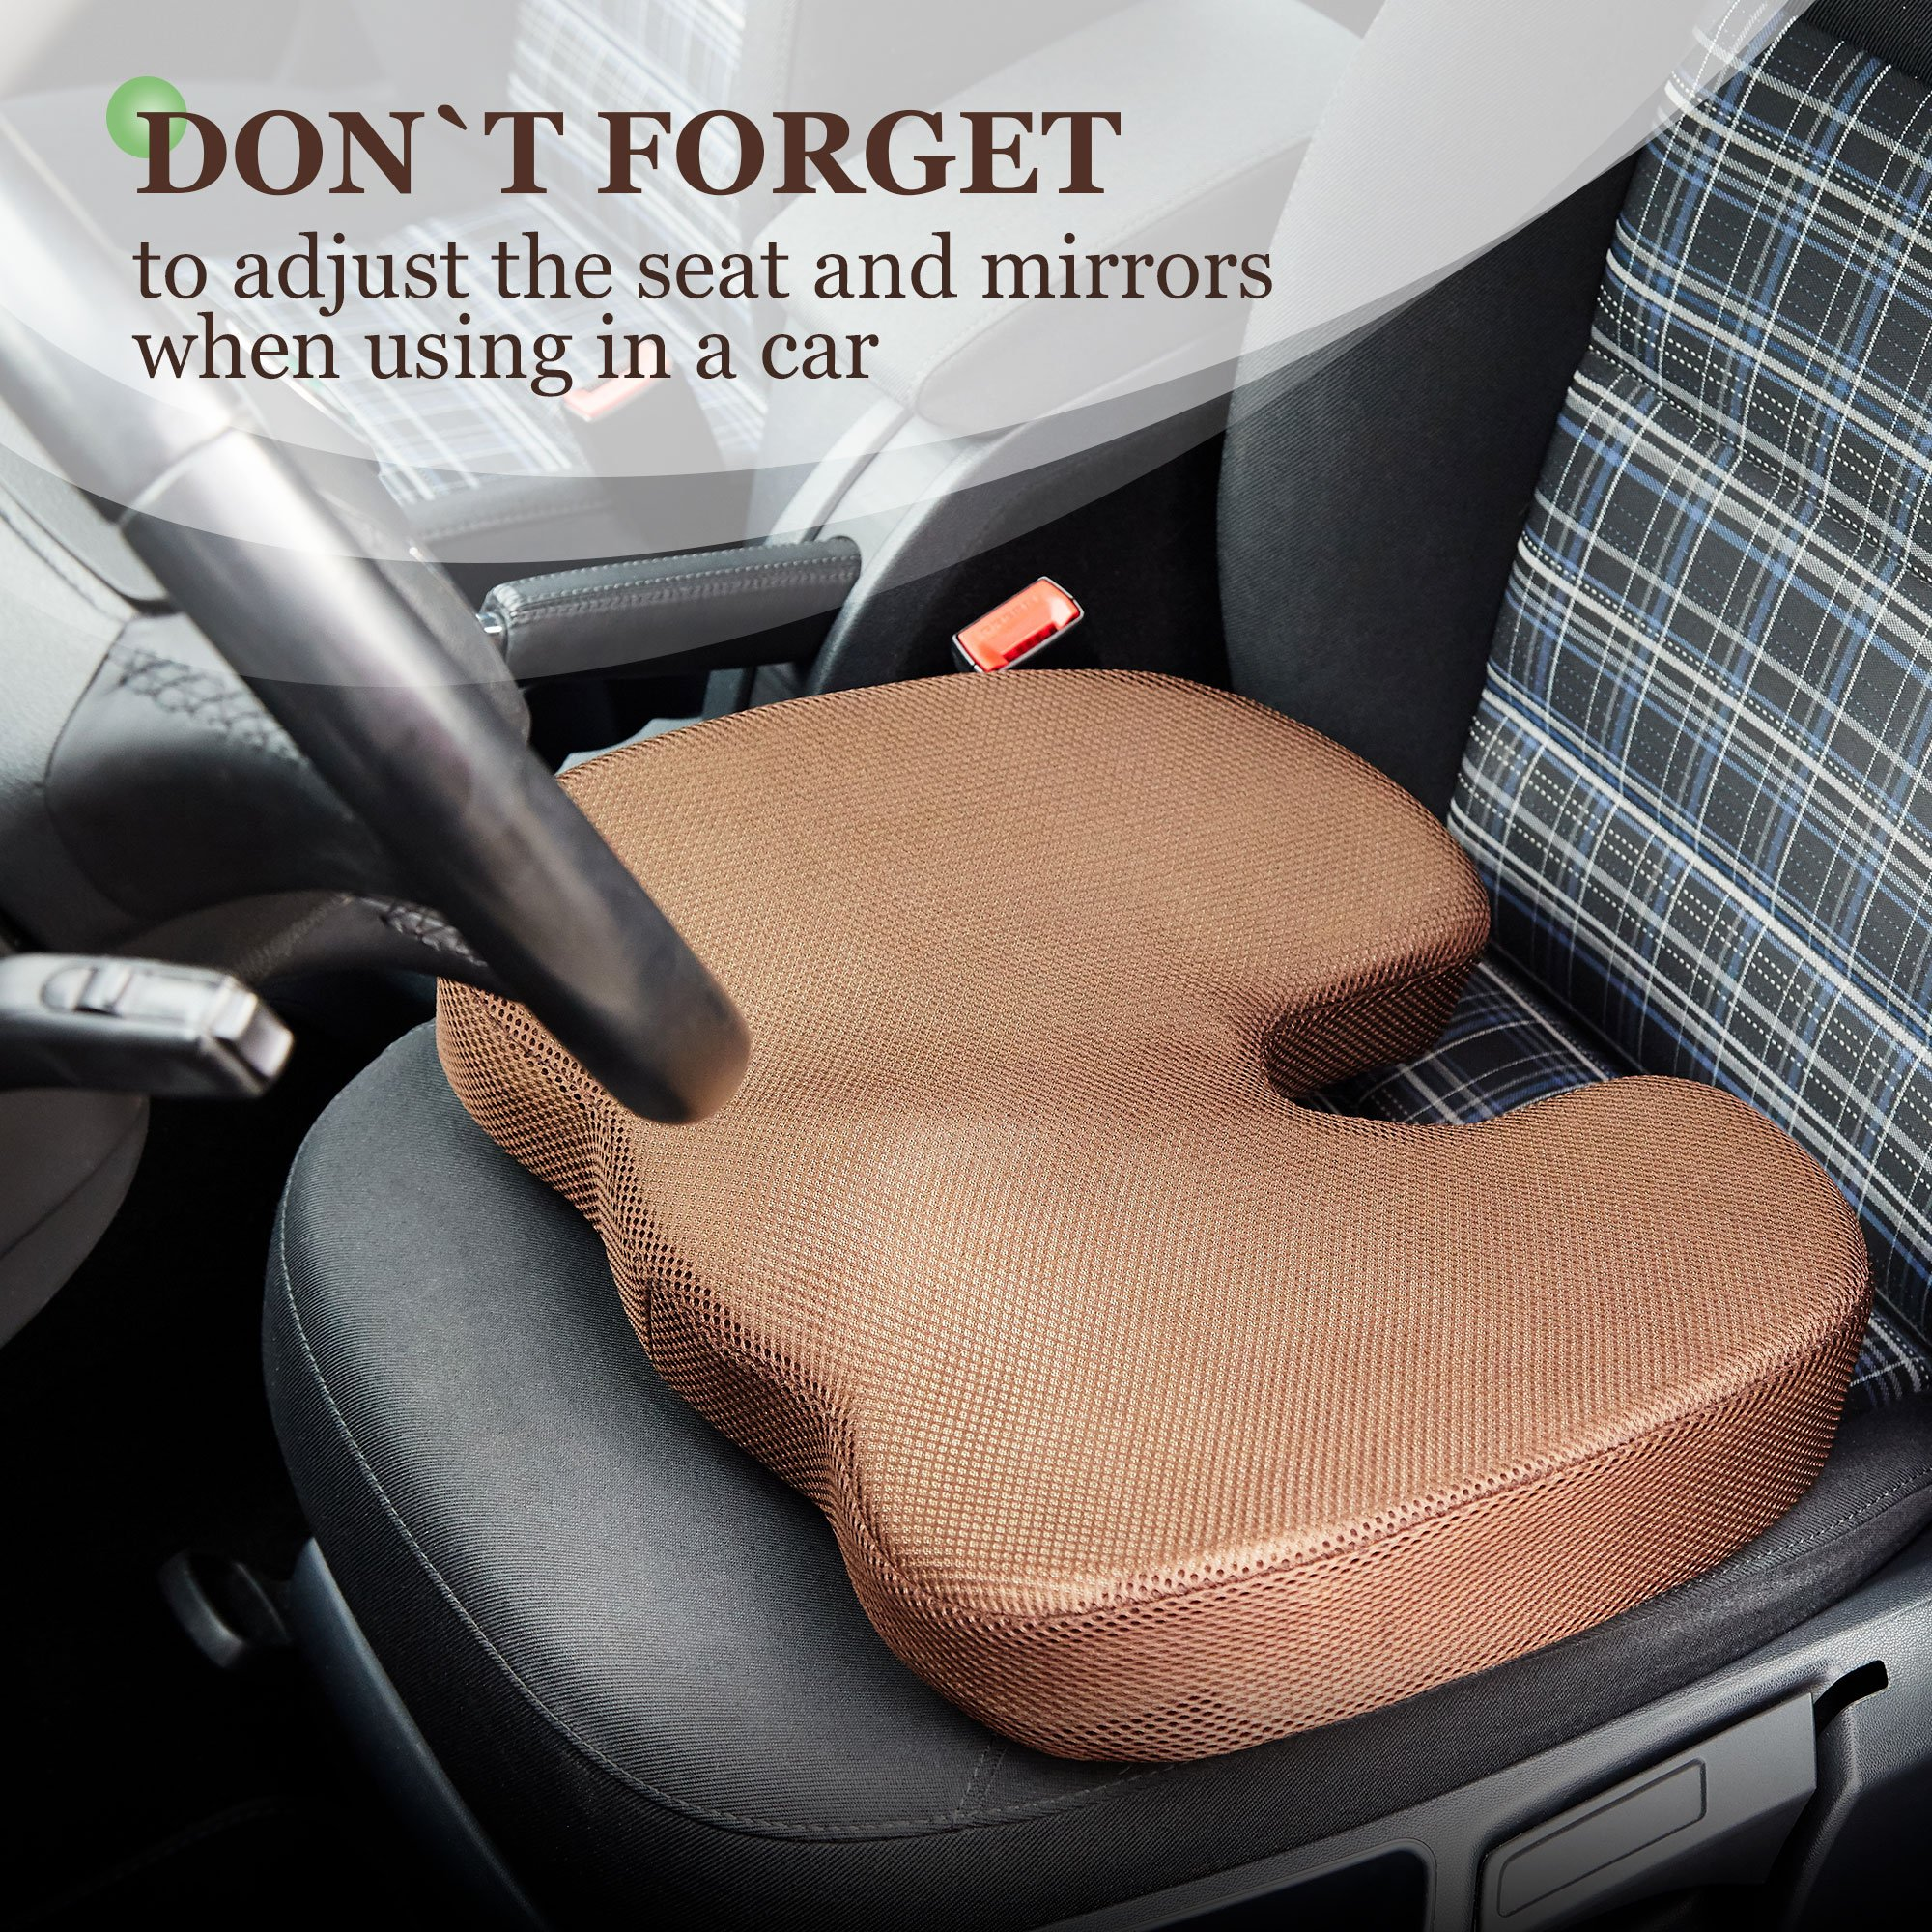 Womby Orthopedic Memory Foam Seat Cushion (U-Type) by Orthopedic Coccyx Pillow for Office Chair, Car, Plane – Best Design to Relieve Back, Sciatica and Tailbone Pain – Non-Slip, Washable Cover by Womby (Image #5)